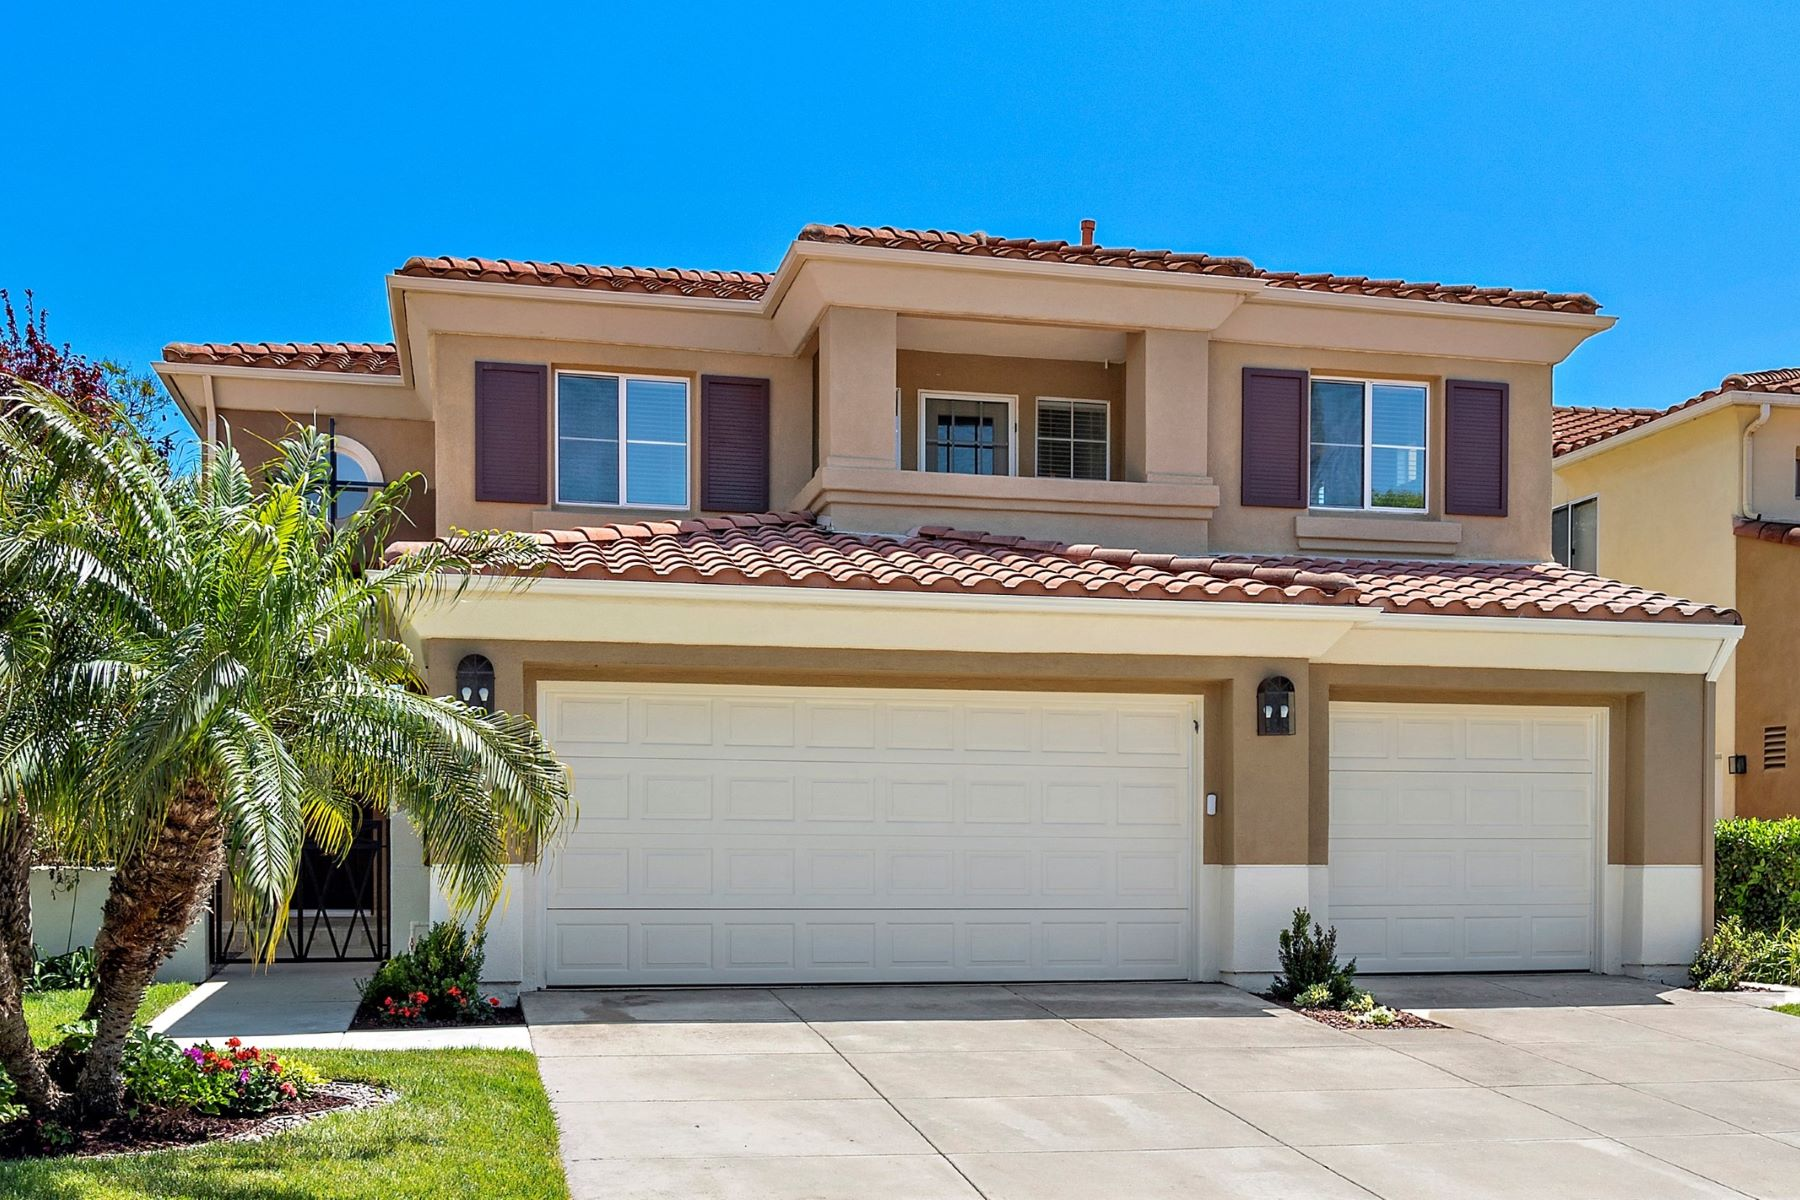 Single Family Homes for Active at Cul-de-sac location on a single-loaded street 30 Sitges Laguna Niguel, California 92677 United States